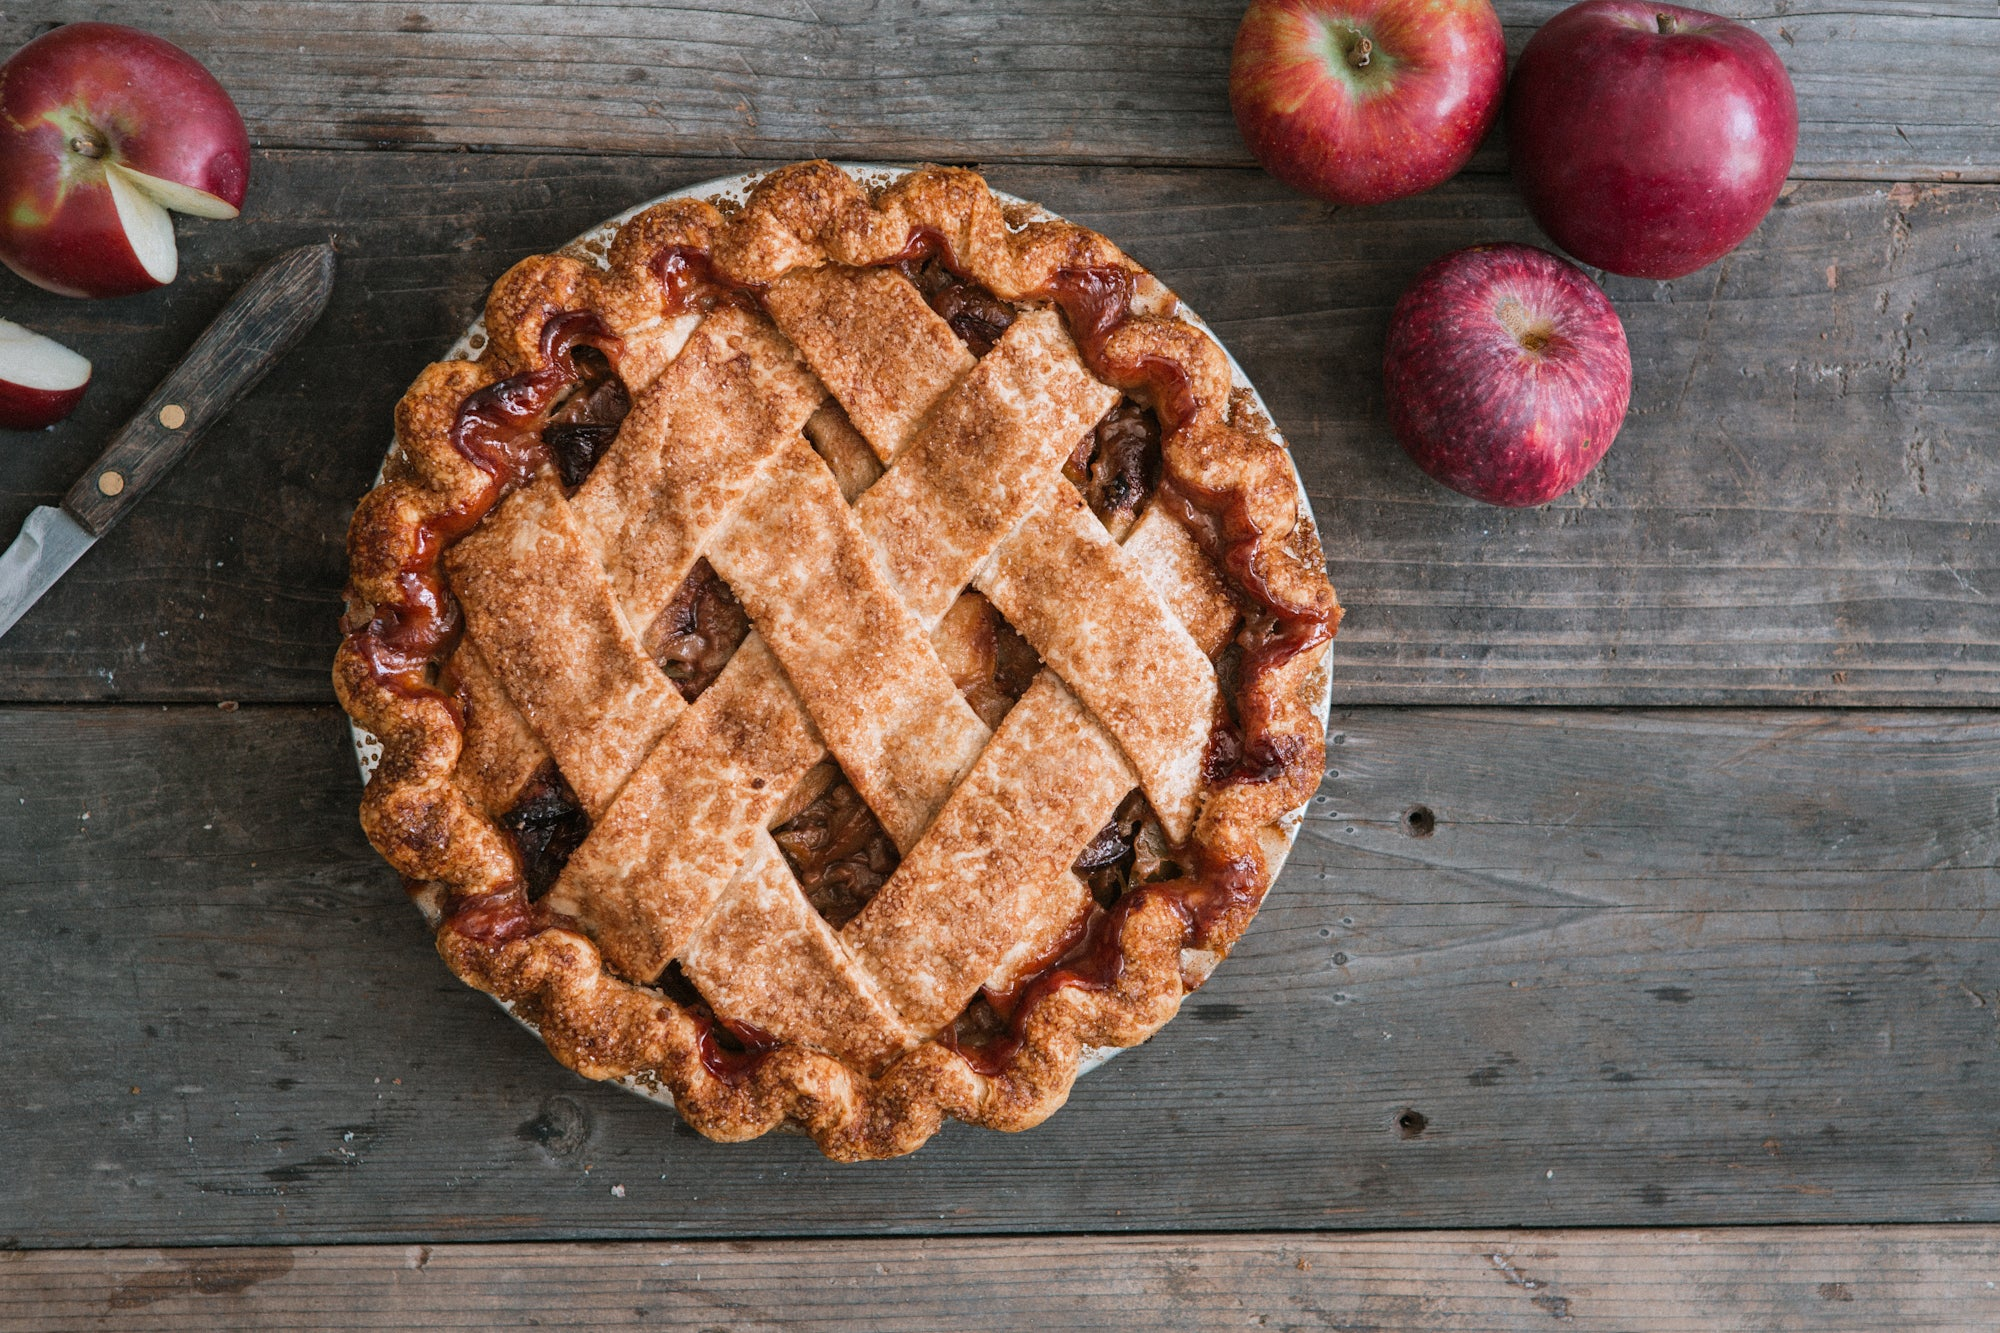 Live! Apple Pie Virtual Class (class admission + pie kit) - October 15, 5pm